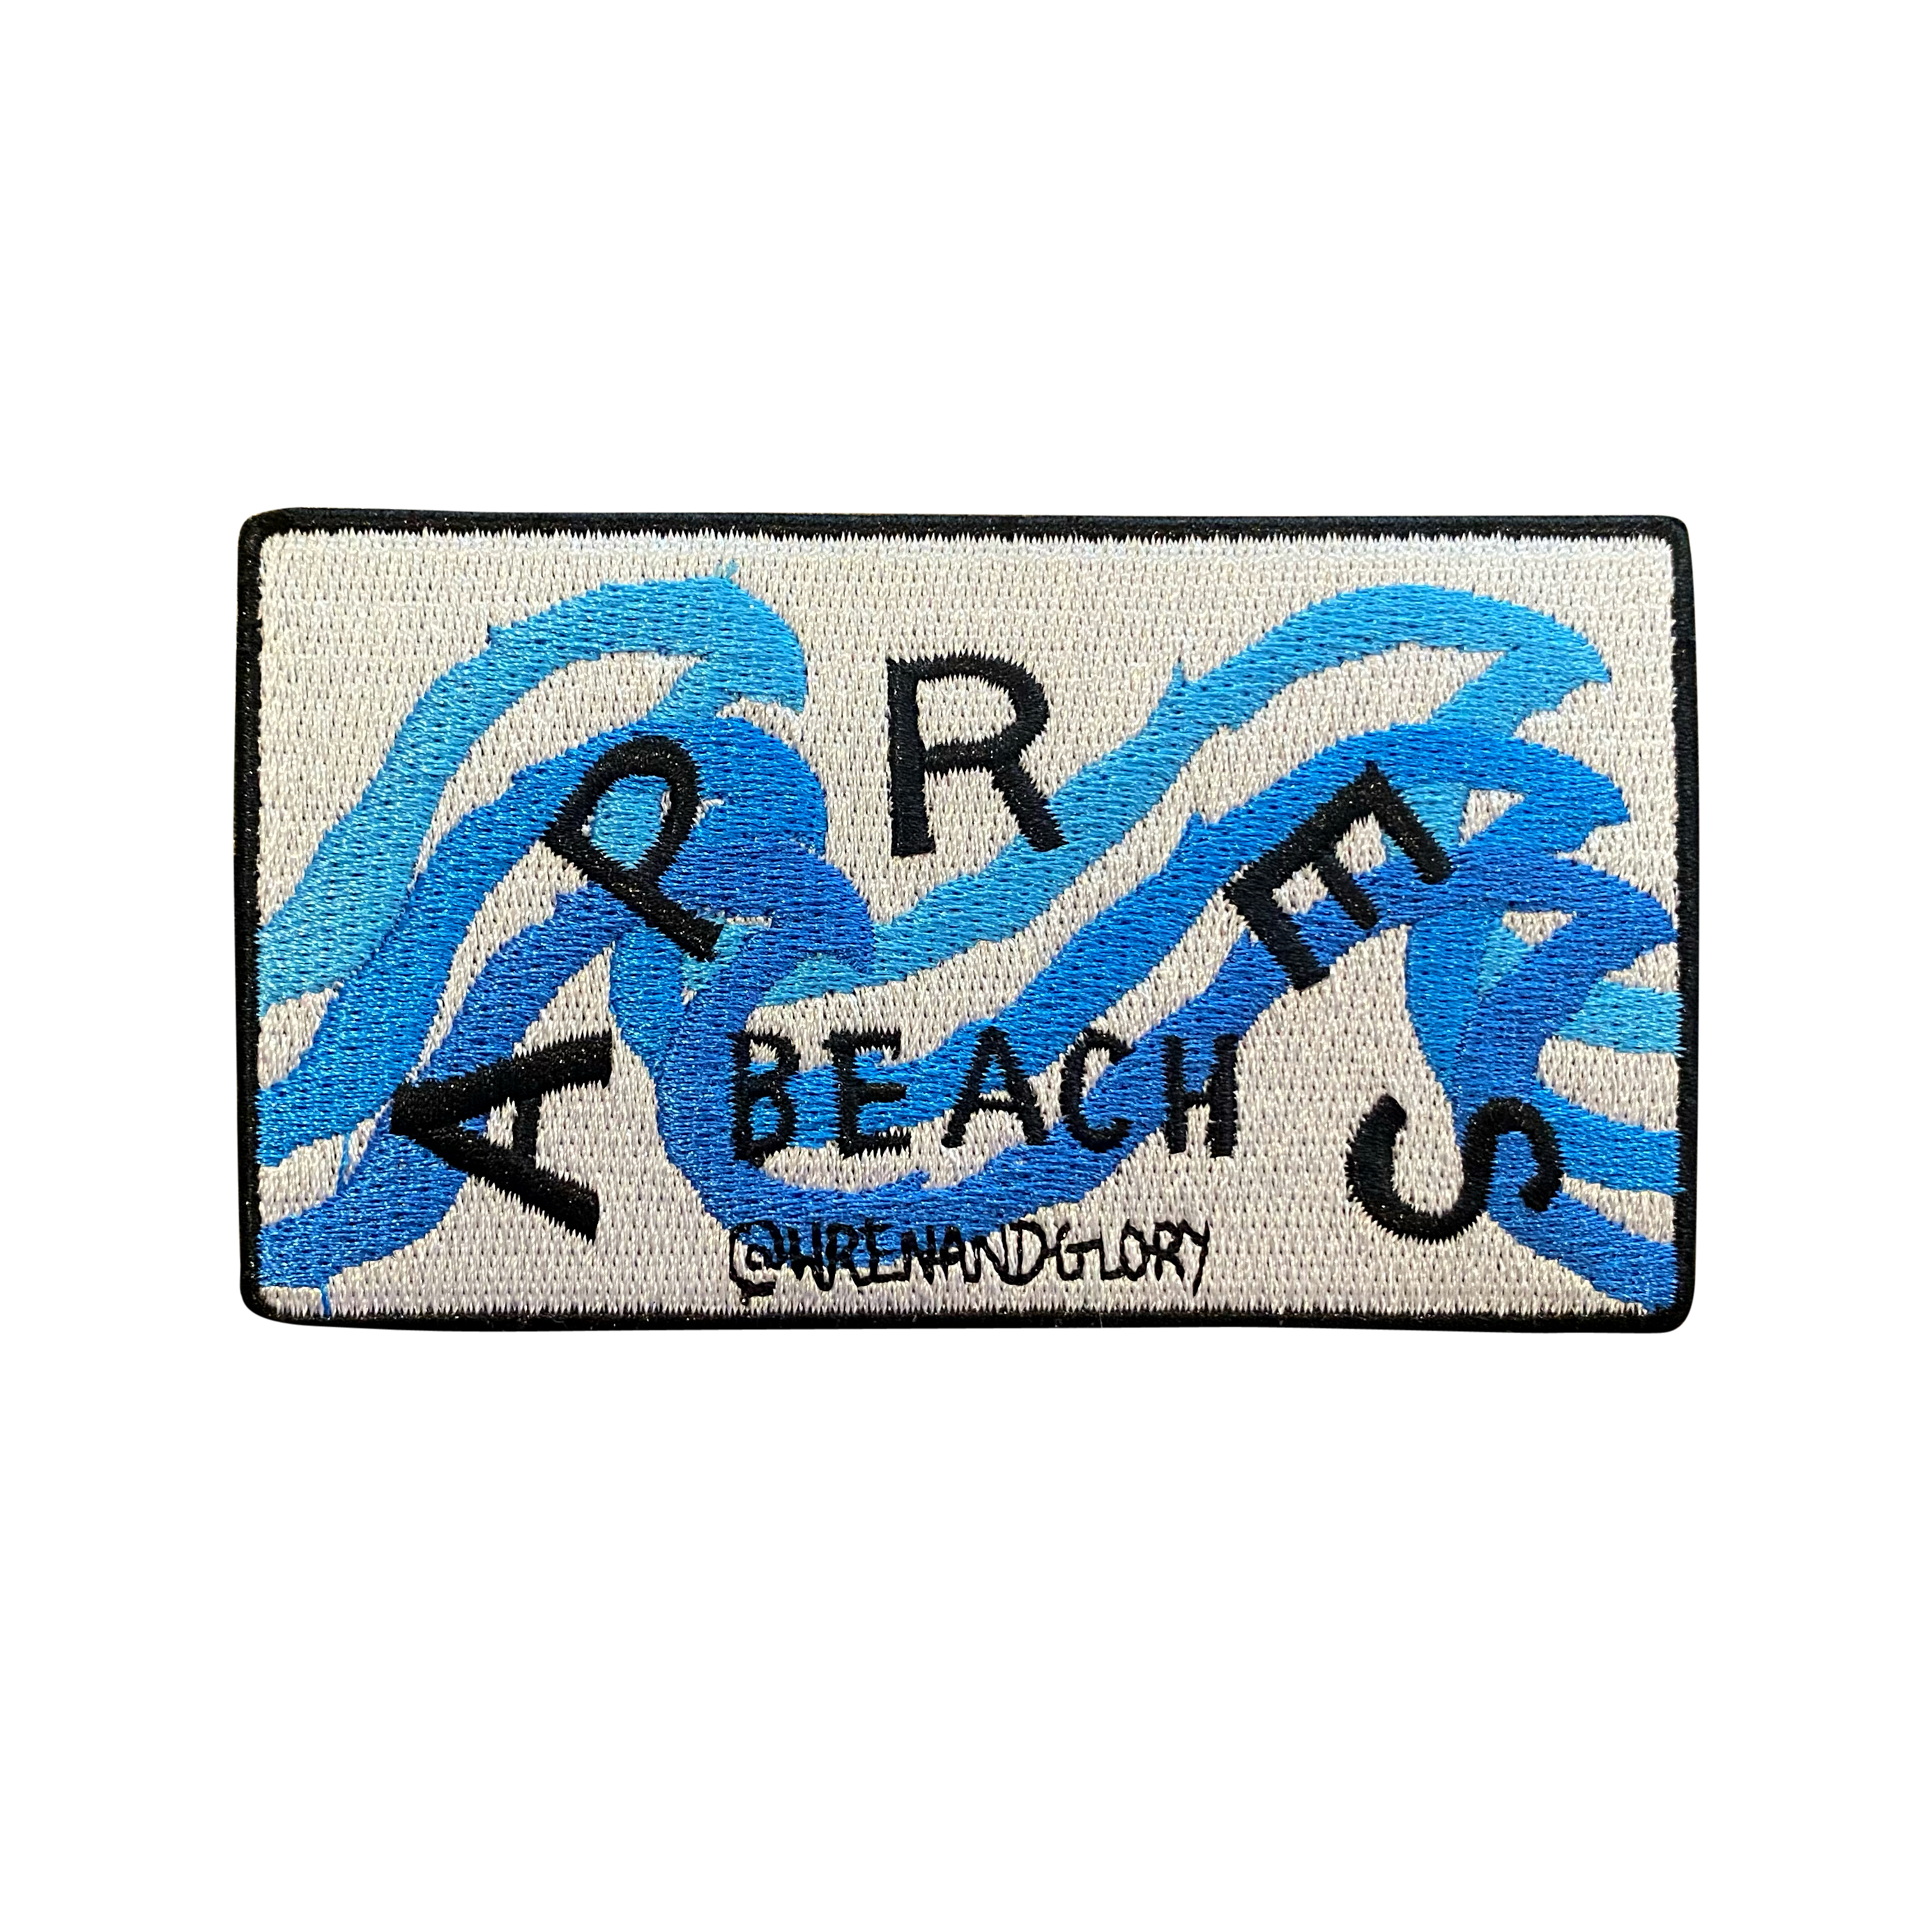 'Apres Beach' Embroidered Patch